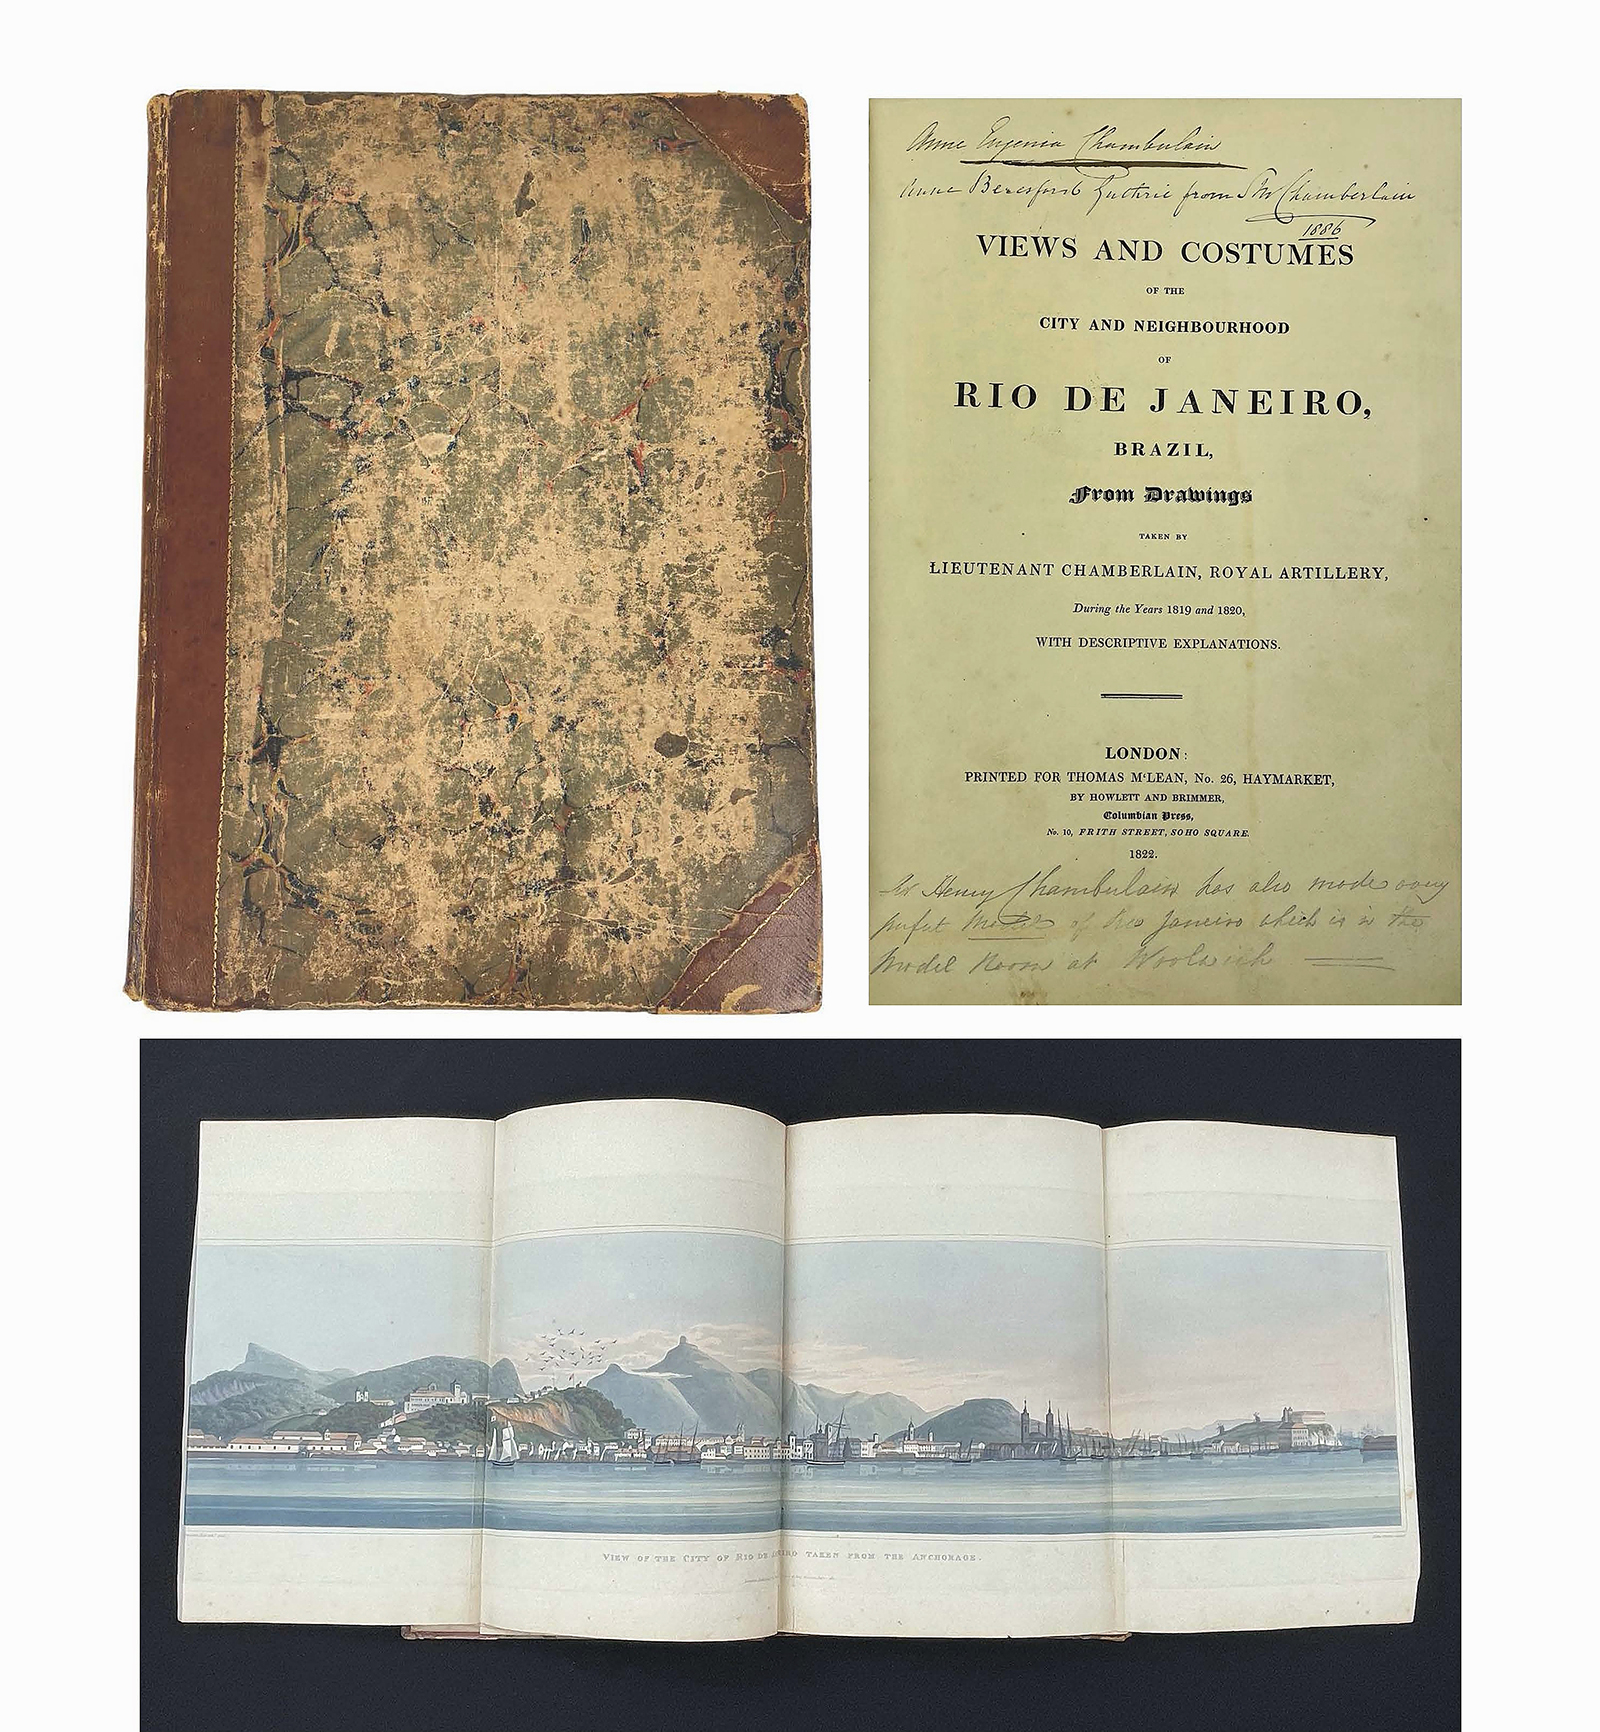 So popular were the panoramic folding plates depicting Rio's harbor in Lt. Henry Chamberlain's Views and Costumes of the City and Neighbourhood of Rio de Janeiro (London, 1822), that they often ended up being framed, which, coupled with the book's issuance in parts, made finding complete copies exceedingly rare. This first edition, with notation's by Chamberlain's stepmother, was the top lot in the sale. Complete with all 36 plates, it sold for $108,000.